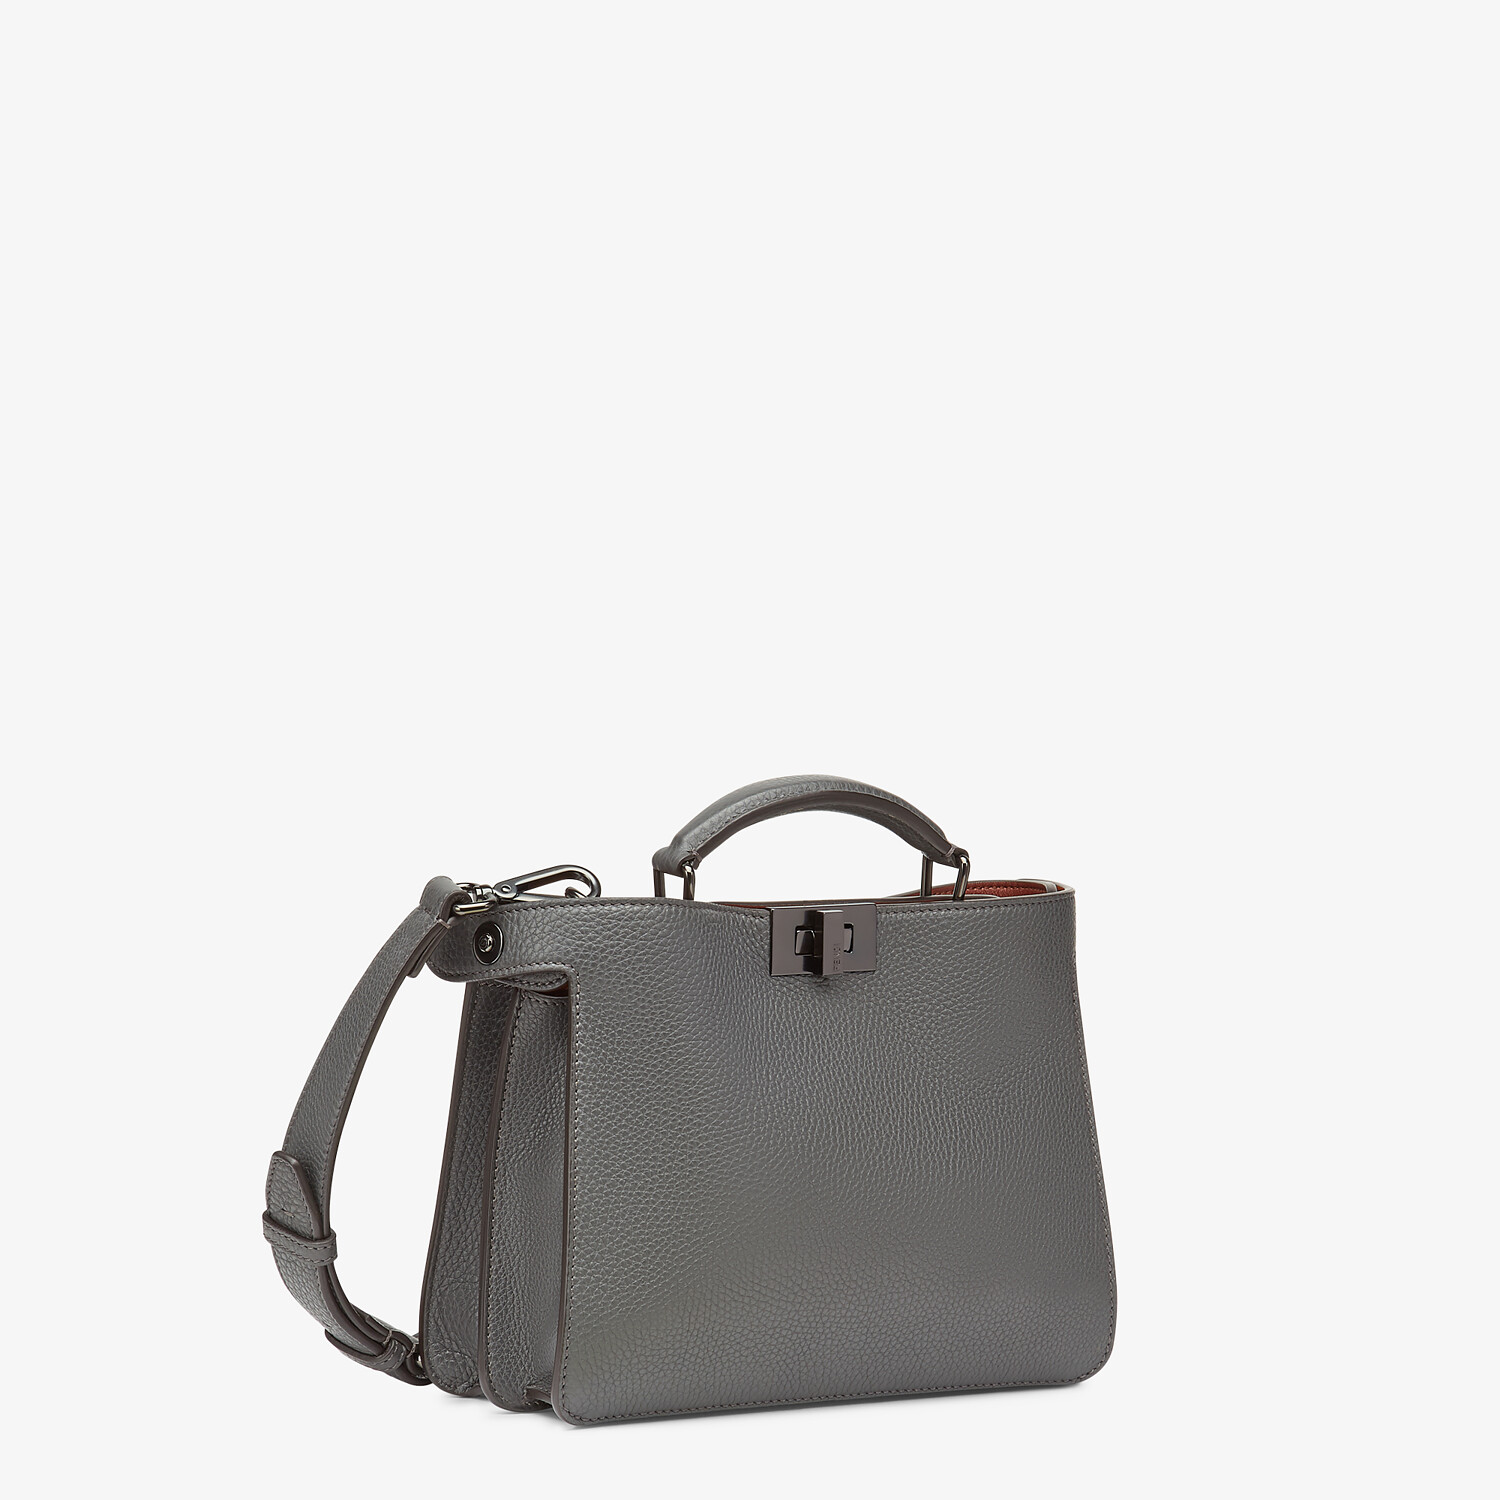 FENDI PEEKABOO ISEEU MINI - Gray leather bag - view 3 detail